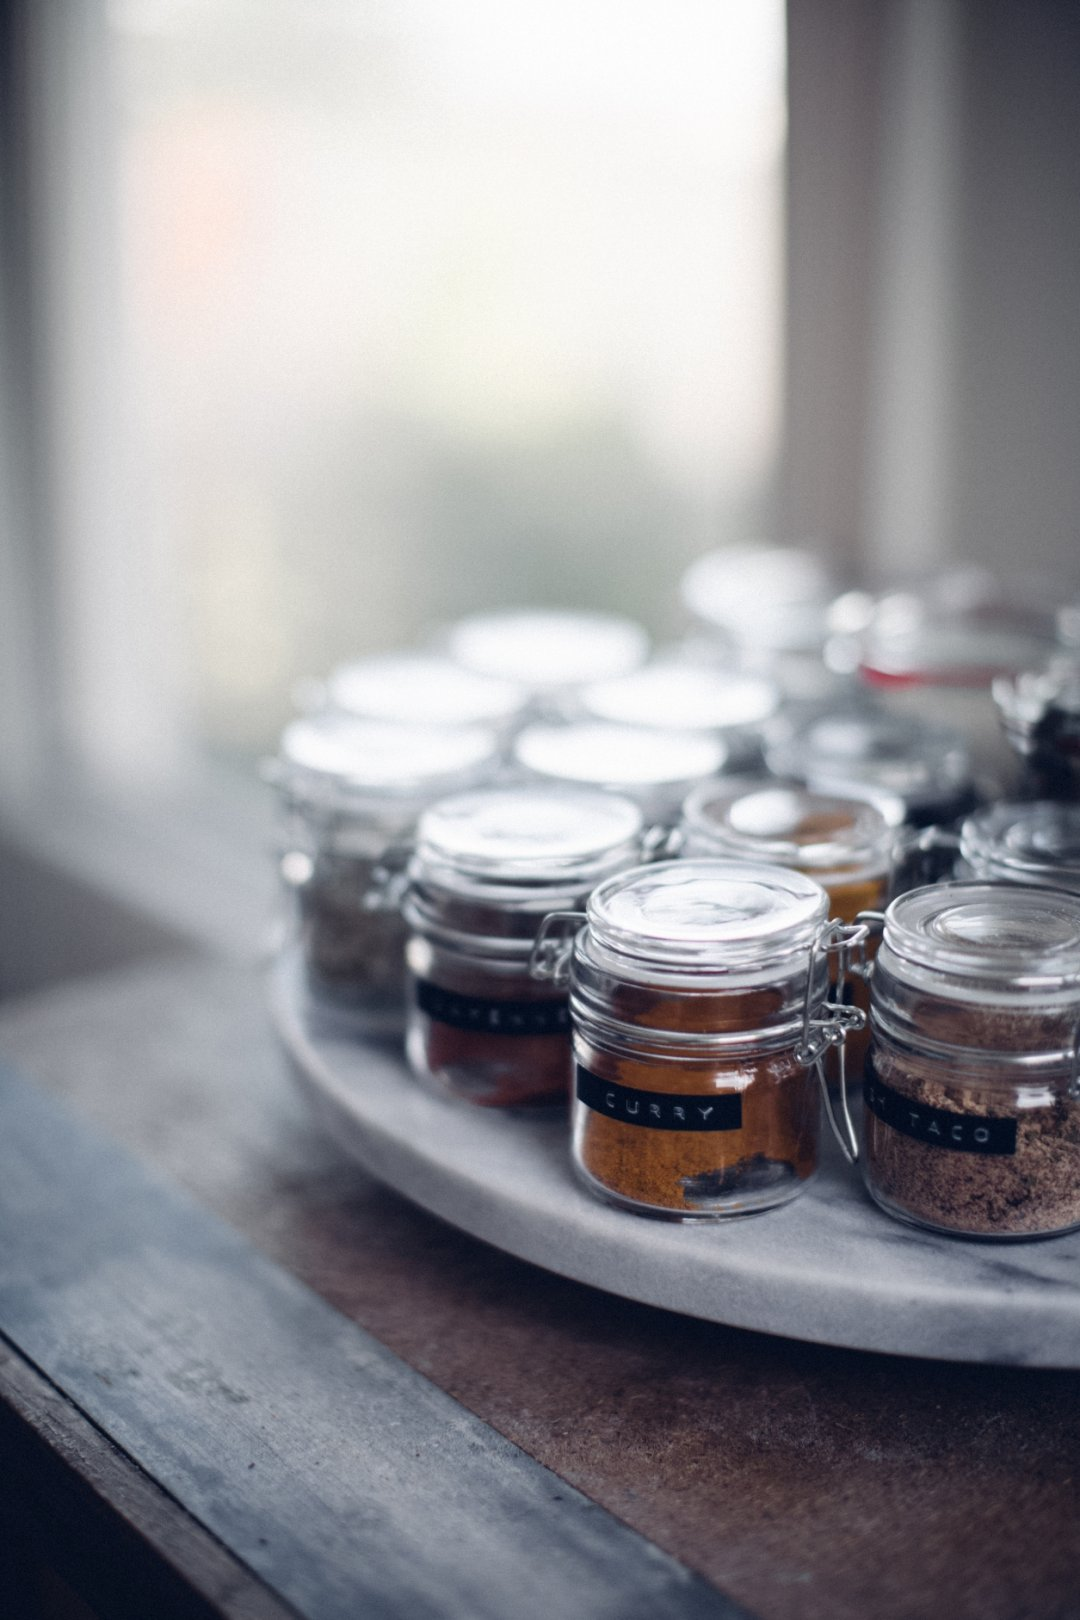 Several mini spice jars with labels on a marble lazy susan